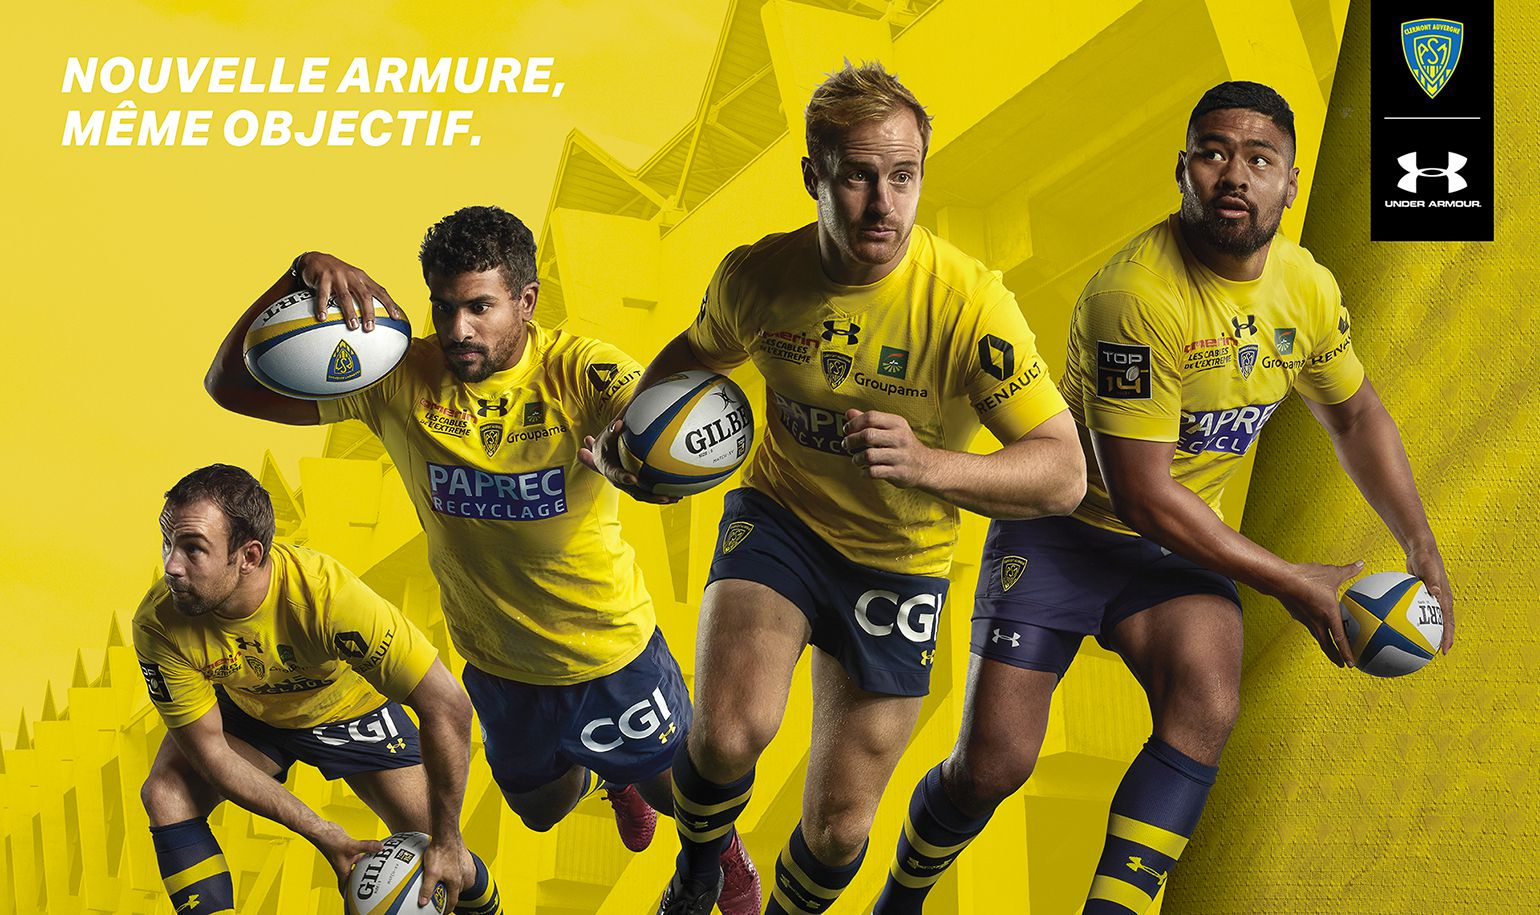 home-maillot.jpg